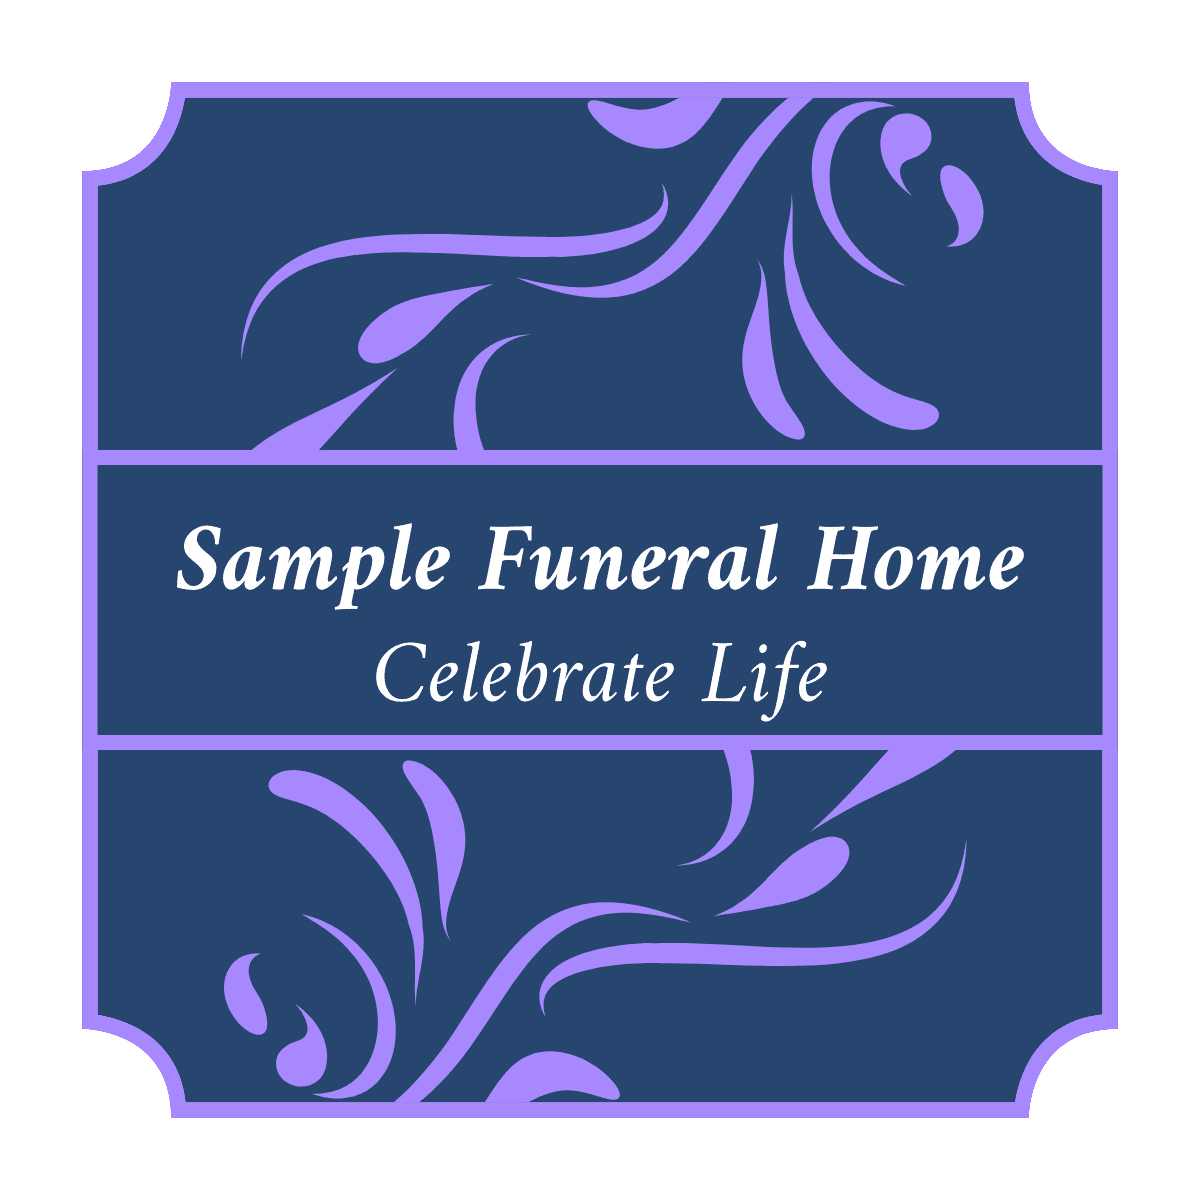 Generic funeral home logo. The name of the funeral home in the center with the phase, Celebrate Life, in the middle. Several classical embelishments surround the words.